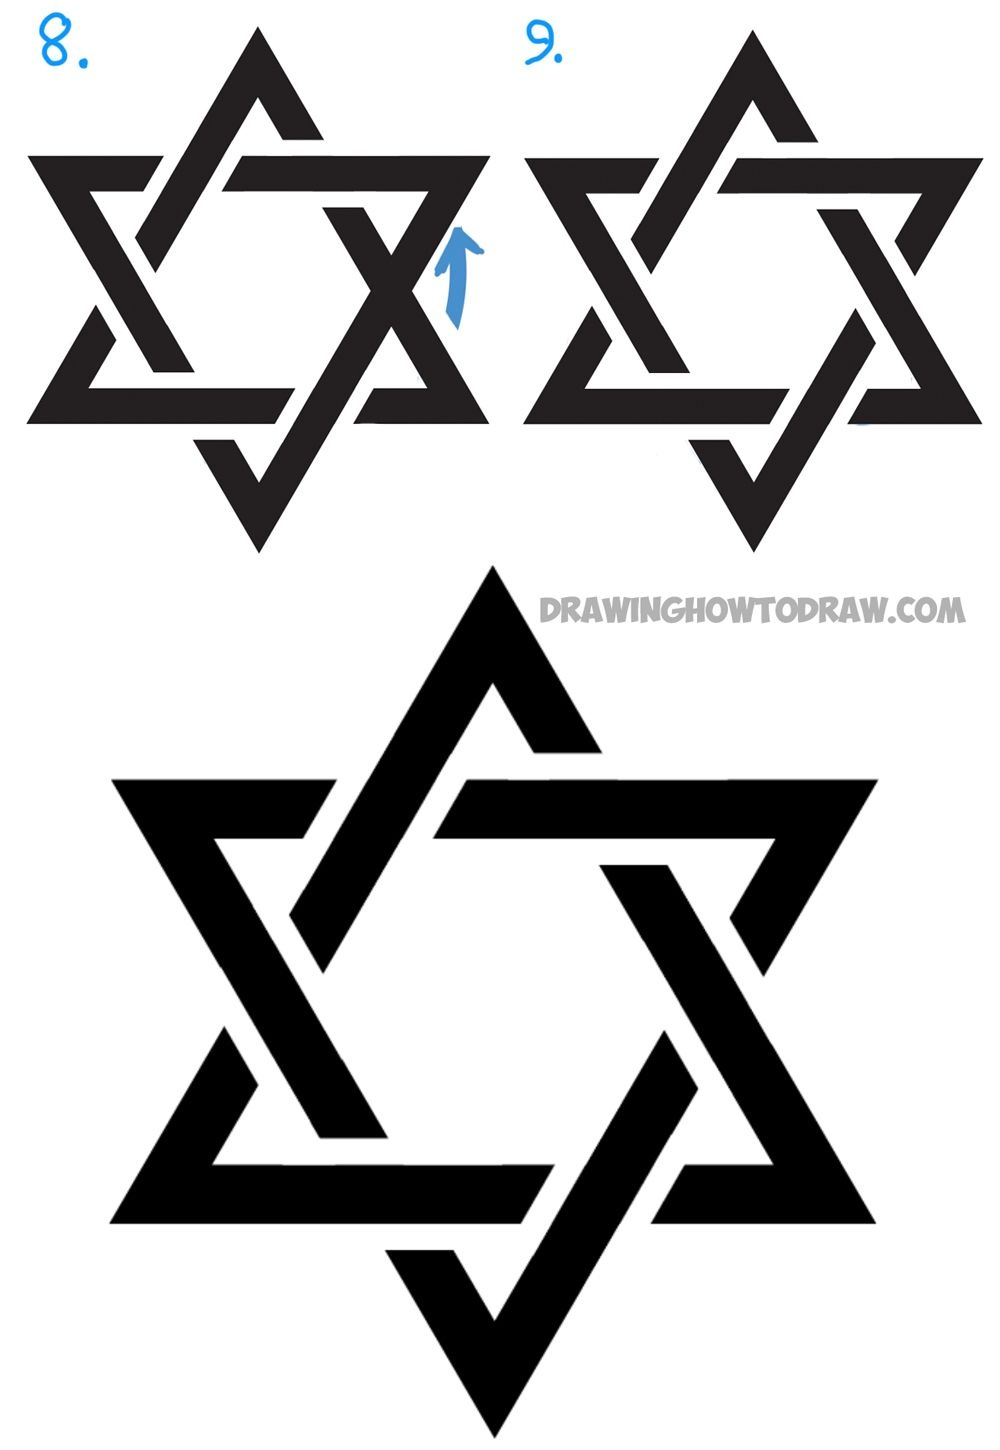 How To Draw The Star Of David (The Jewish Star) With Easy Steps - Star Of David Template Free Printable